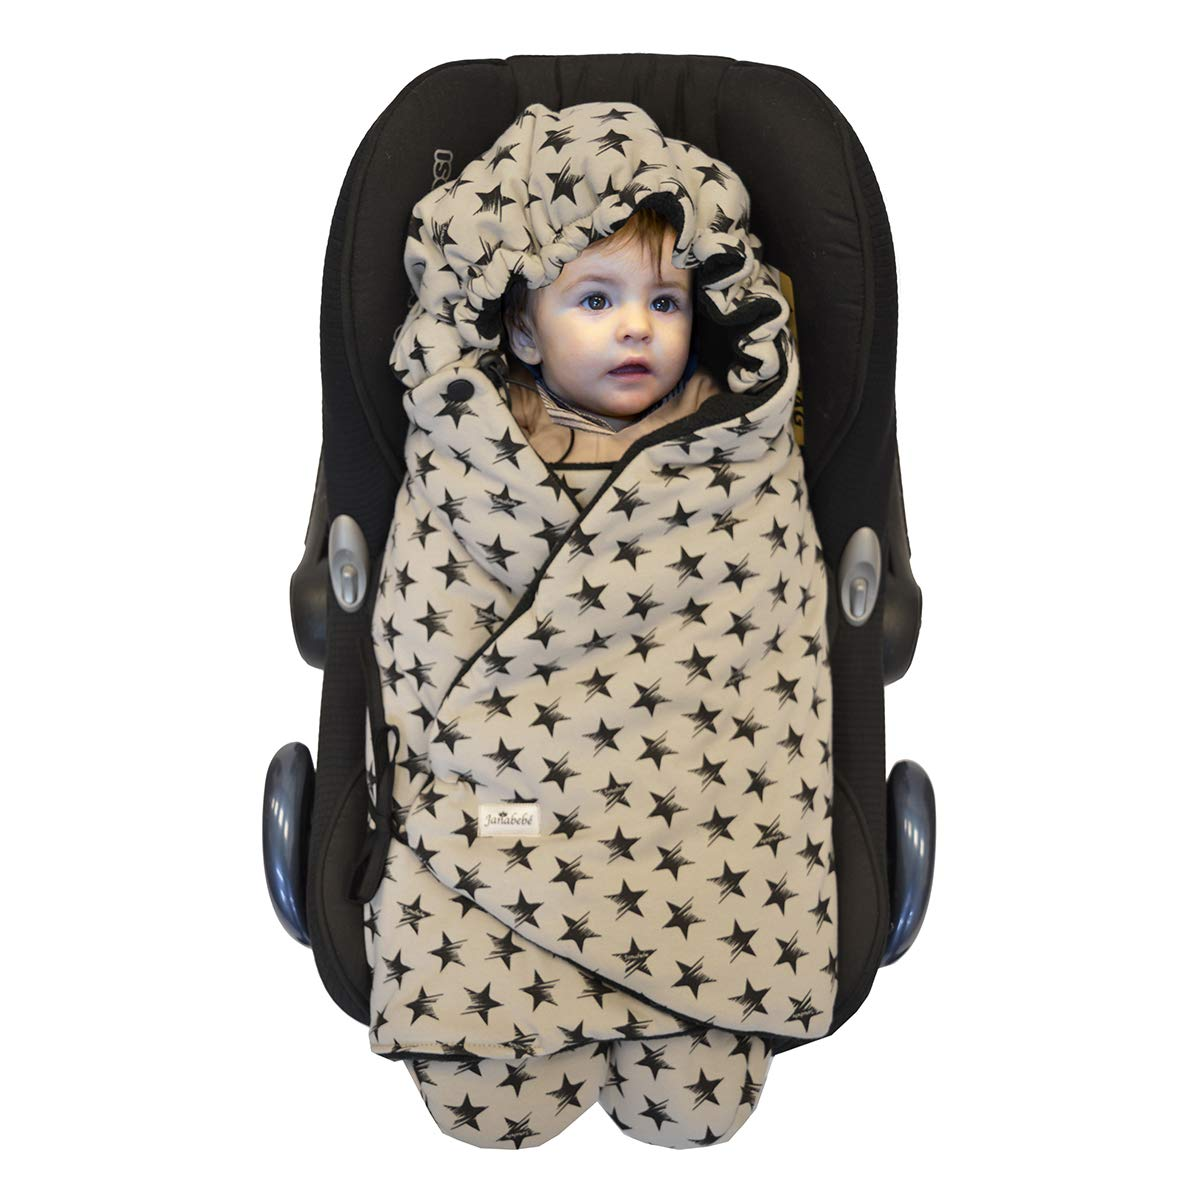 JANABEBE Swaddling Wrap, Car Seat and Pram Blanket Universal for Infant and Child car Seats e.g. Maxi-COSI, Britax, for a Pushchair/Stroller, Buggy or Baby 0 to 11 Months (Dark Sky, Fleece)